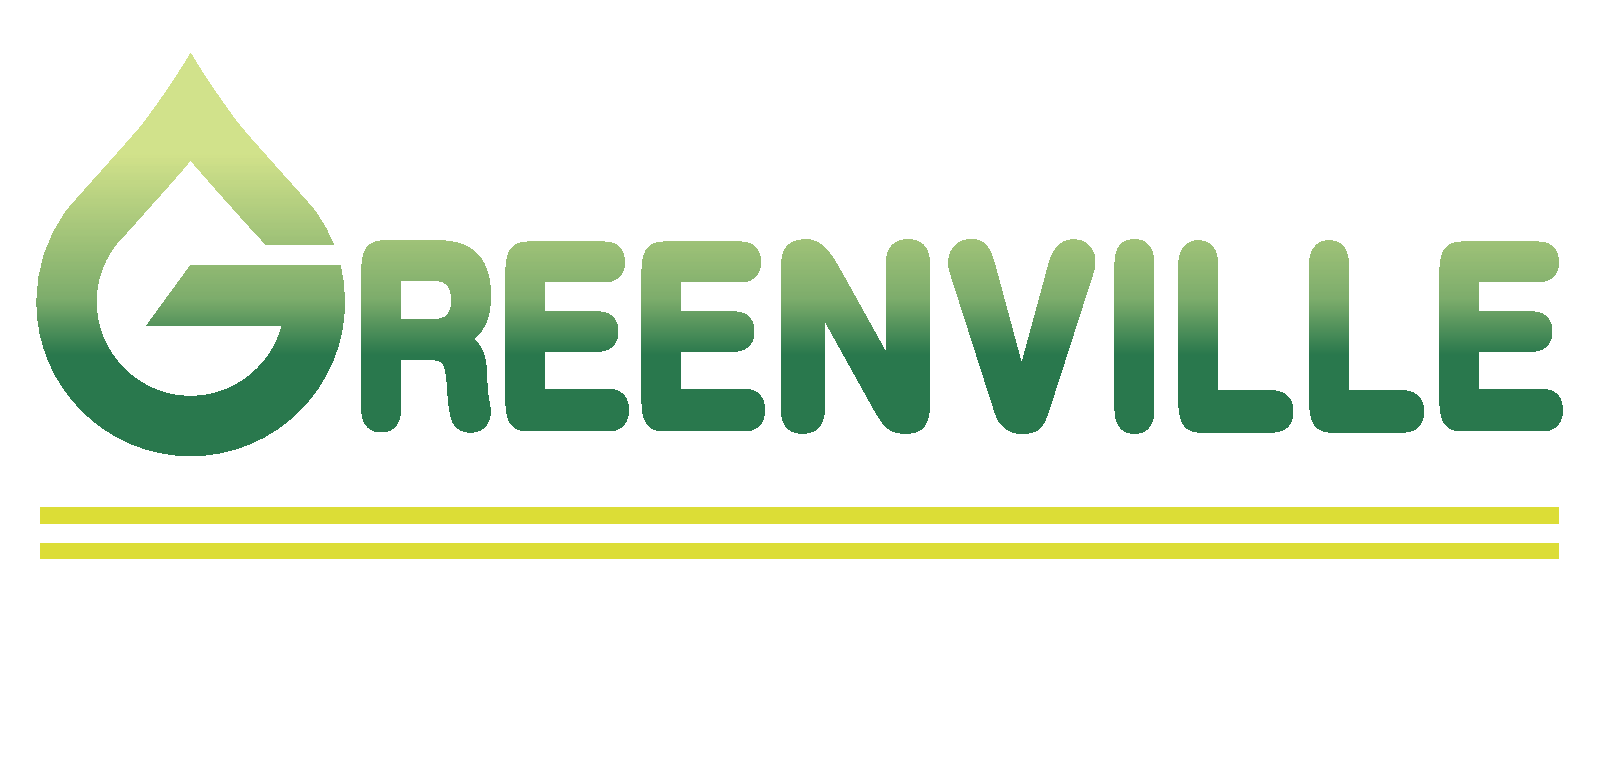 Greenville Liquid Plant Foods